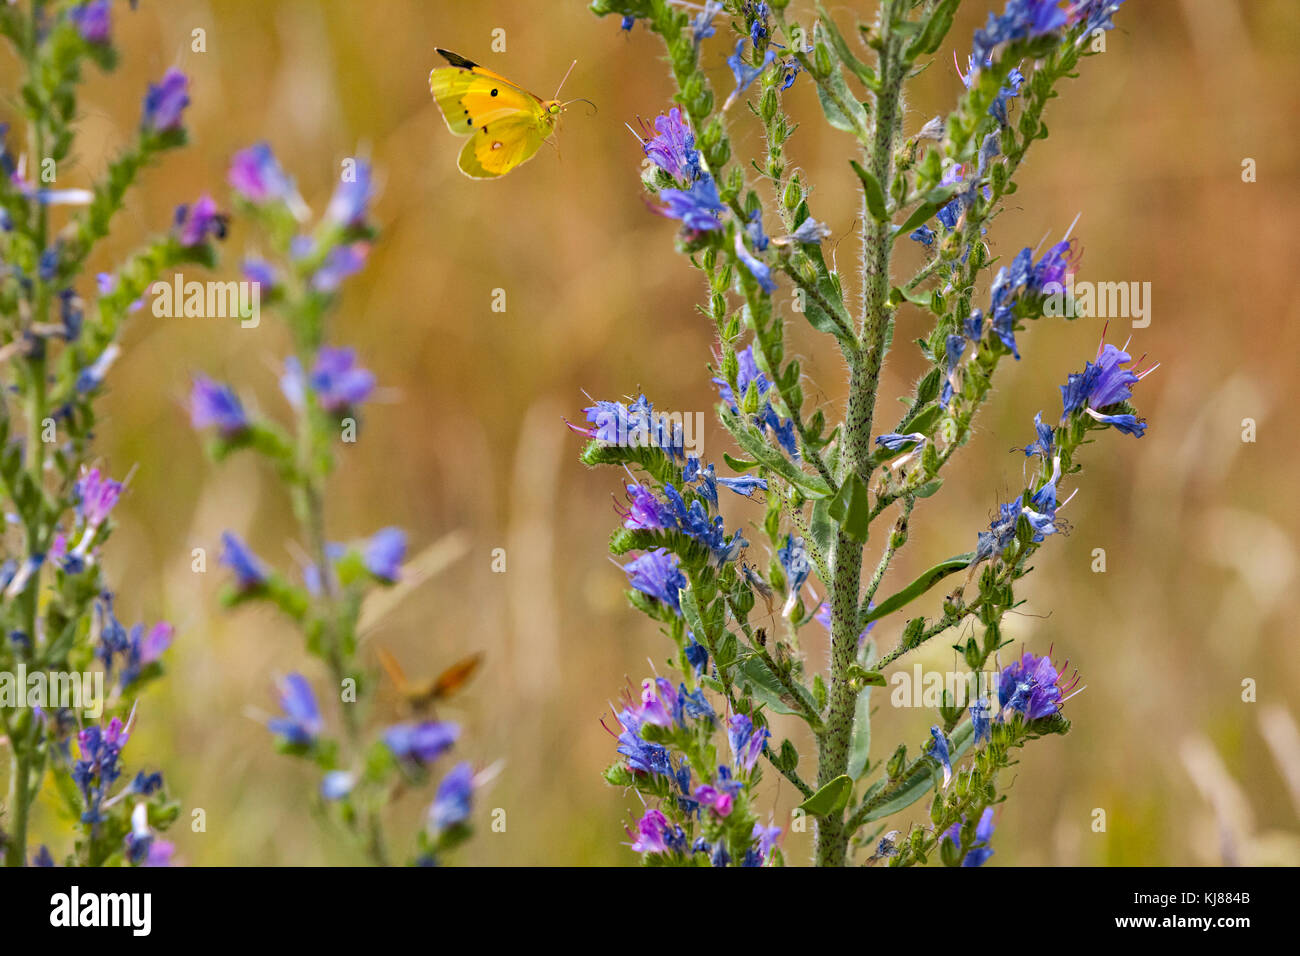 Clouded yellow butterfly in flight seen from the underside over a flower head at Riaza in central Spain - Stock Image